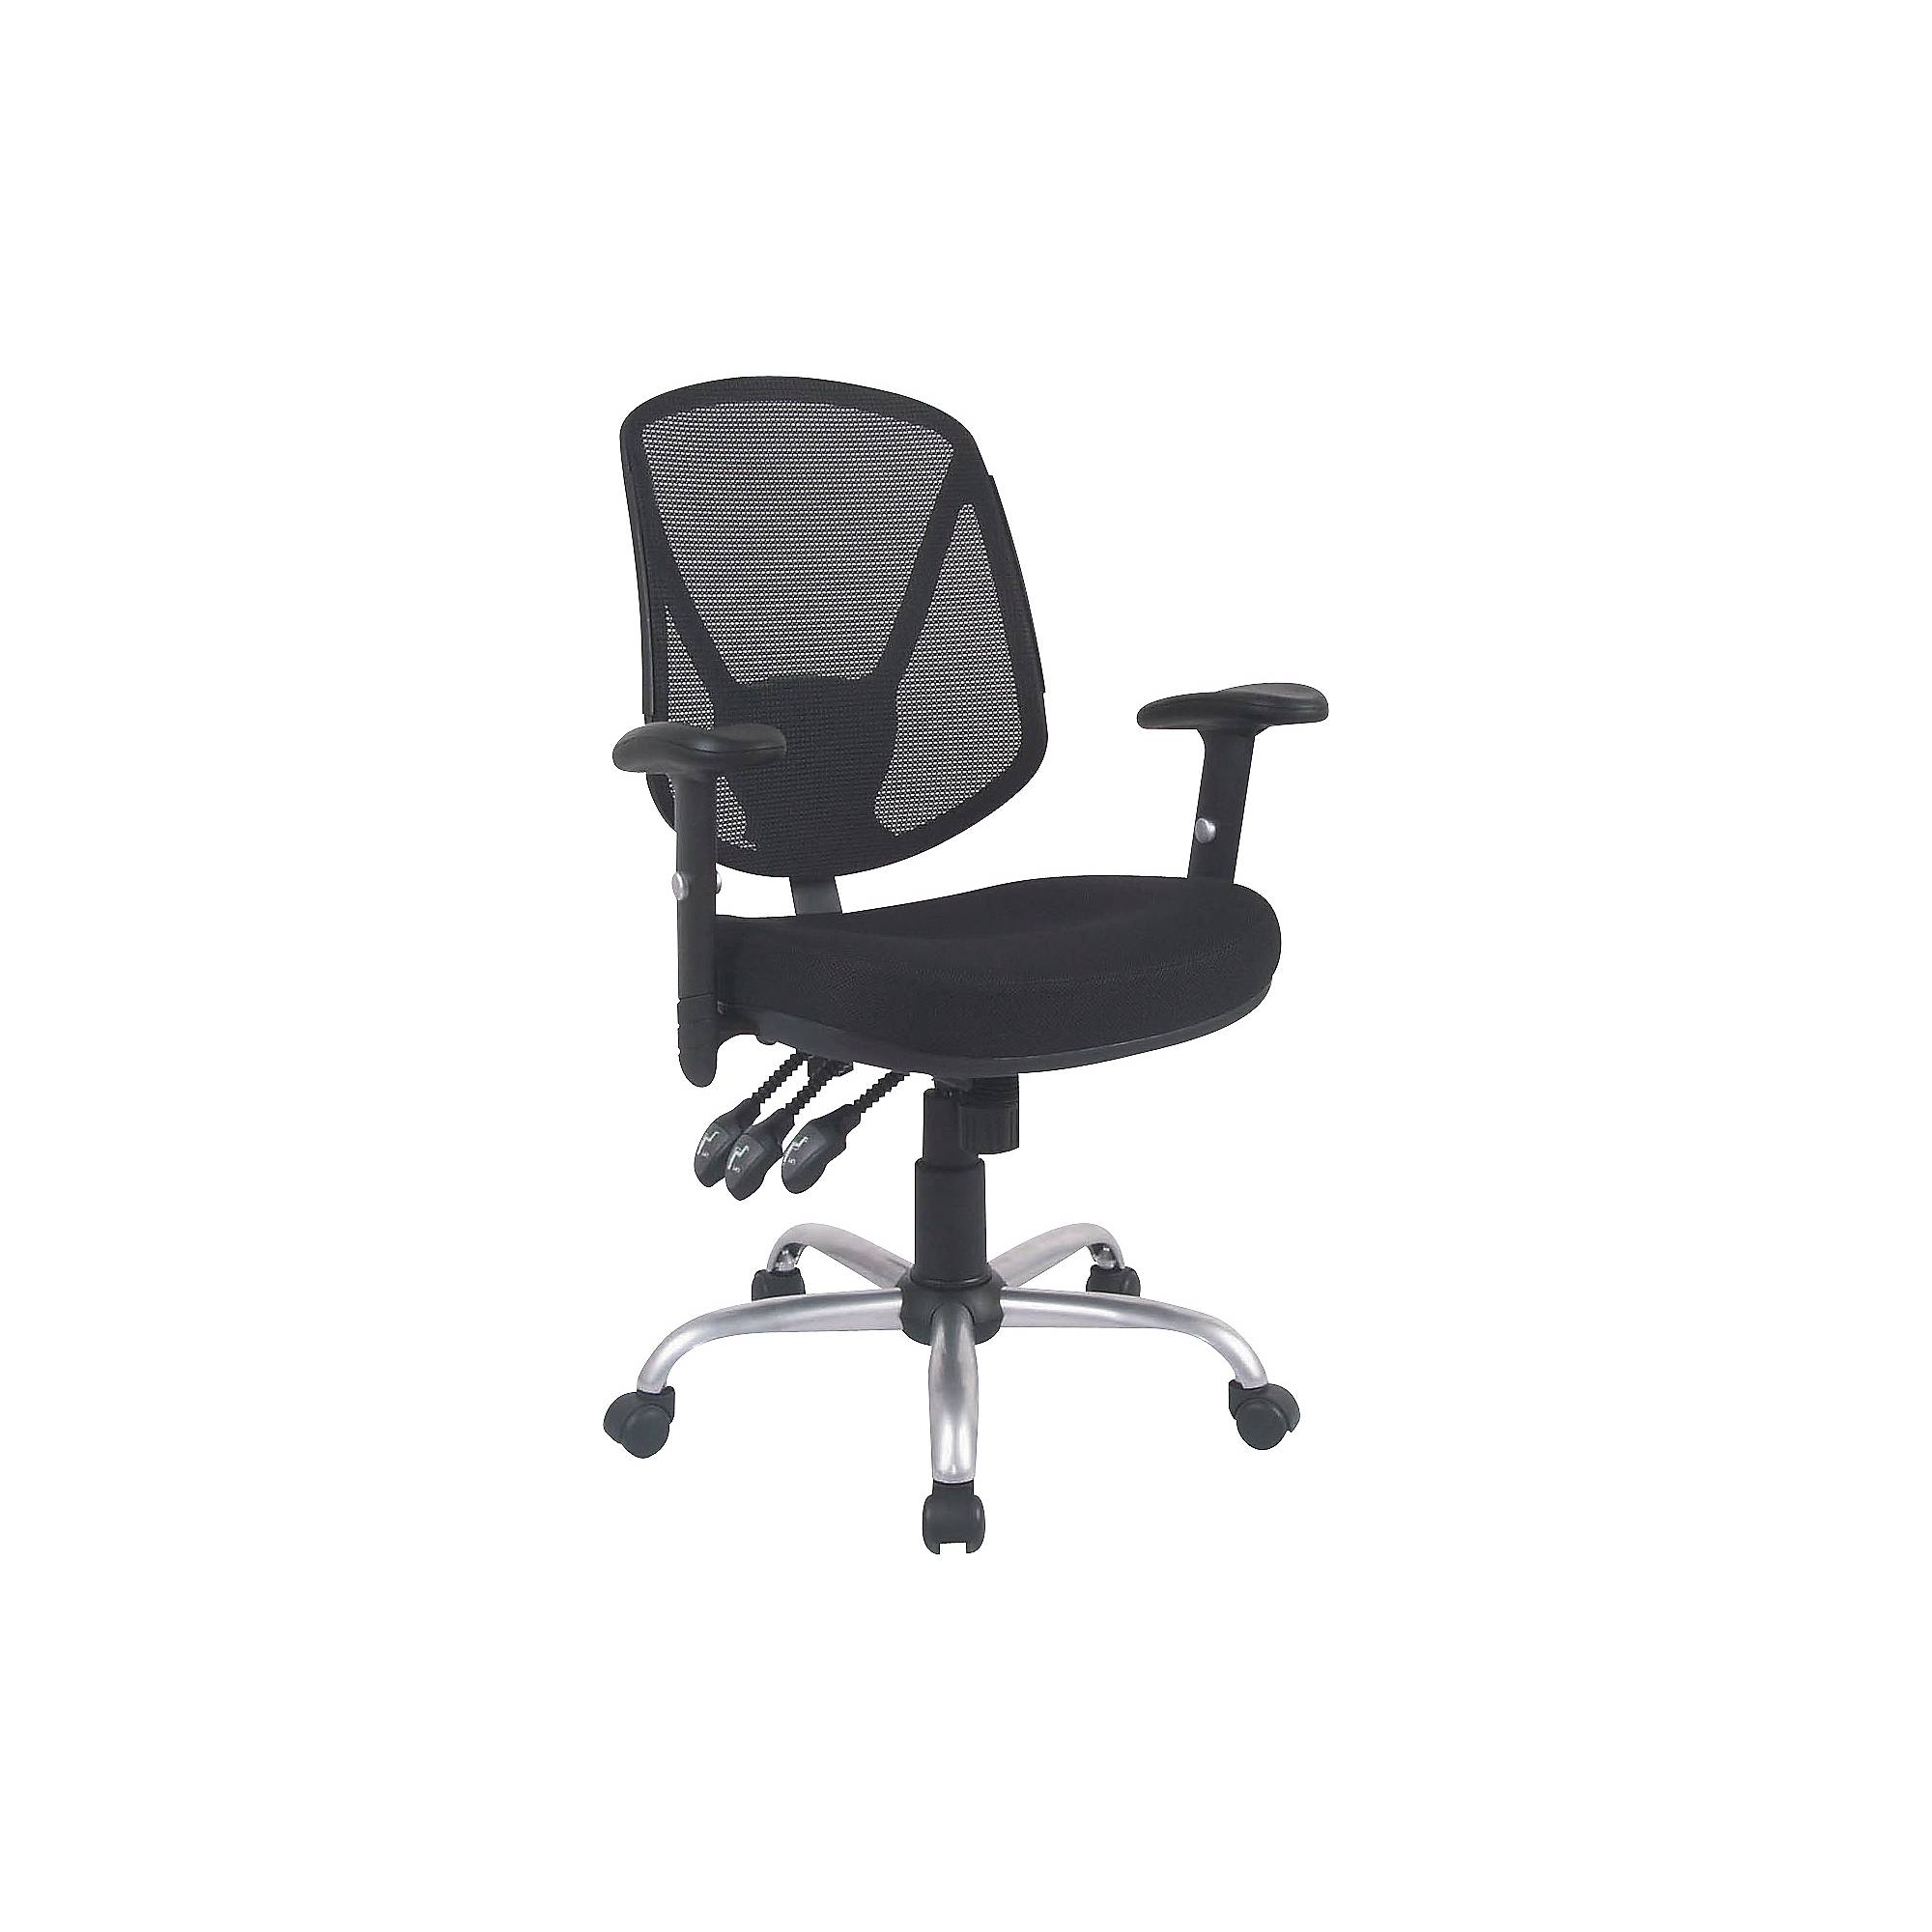 Staples Acadia Ergonomic Mesh Mid-Back Office Chair with ...